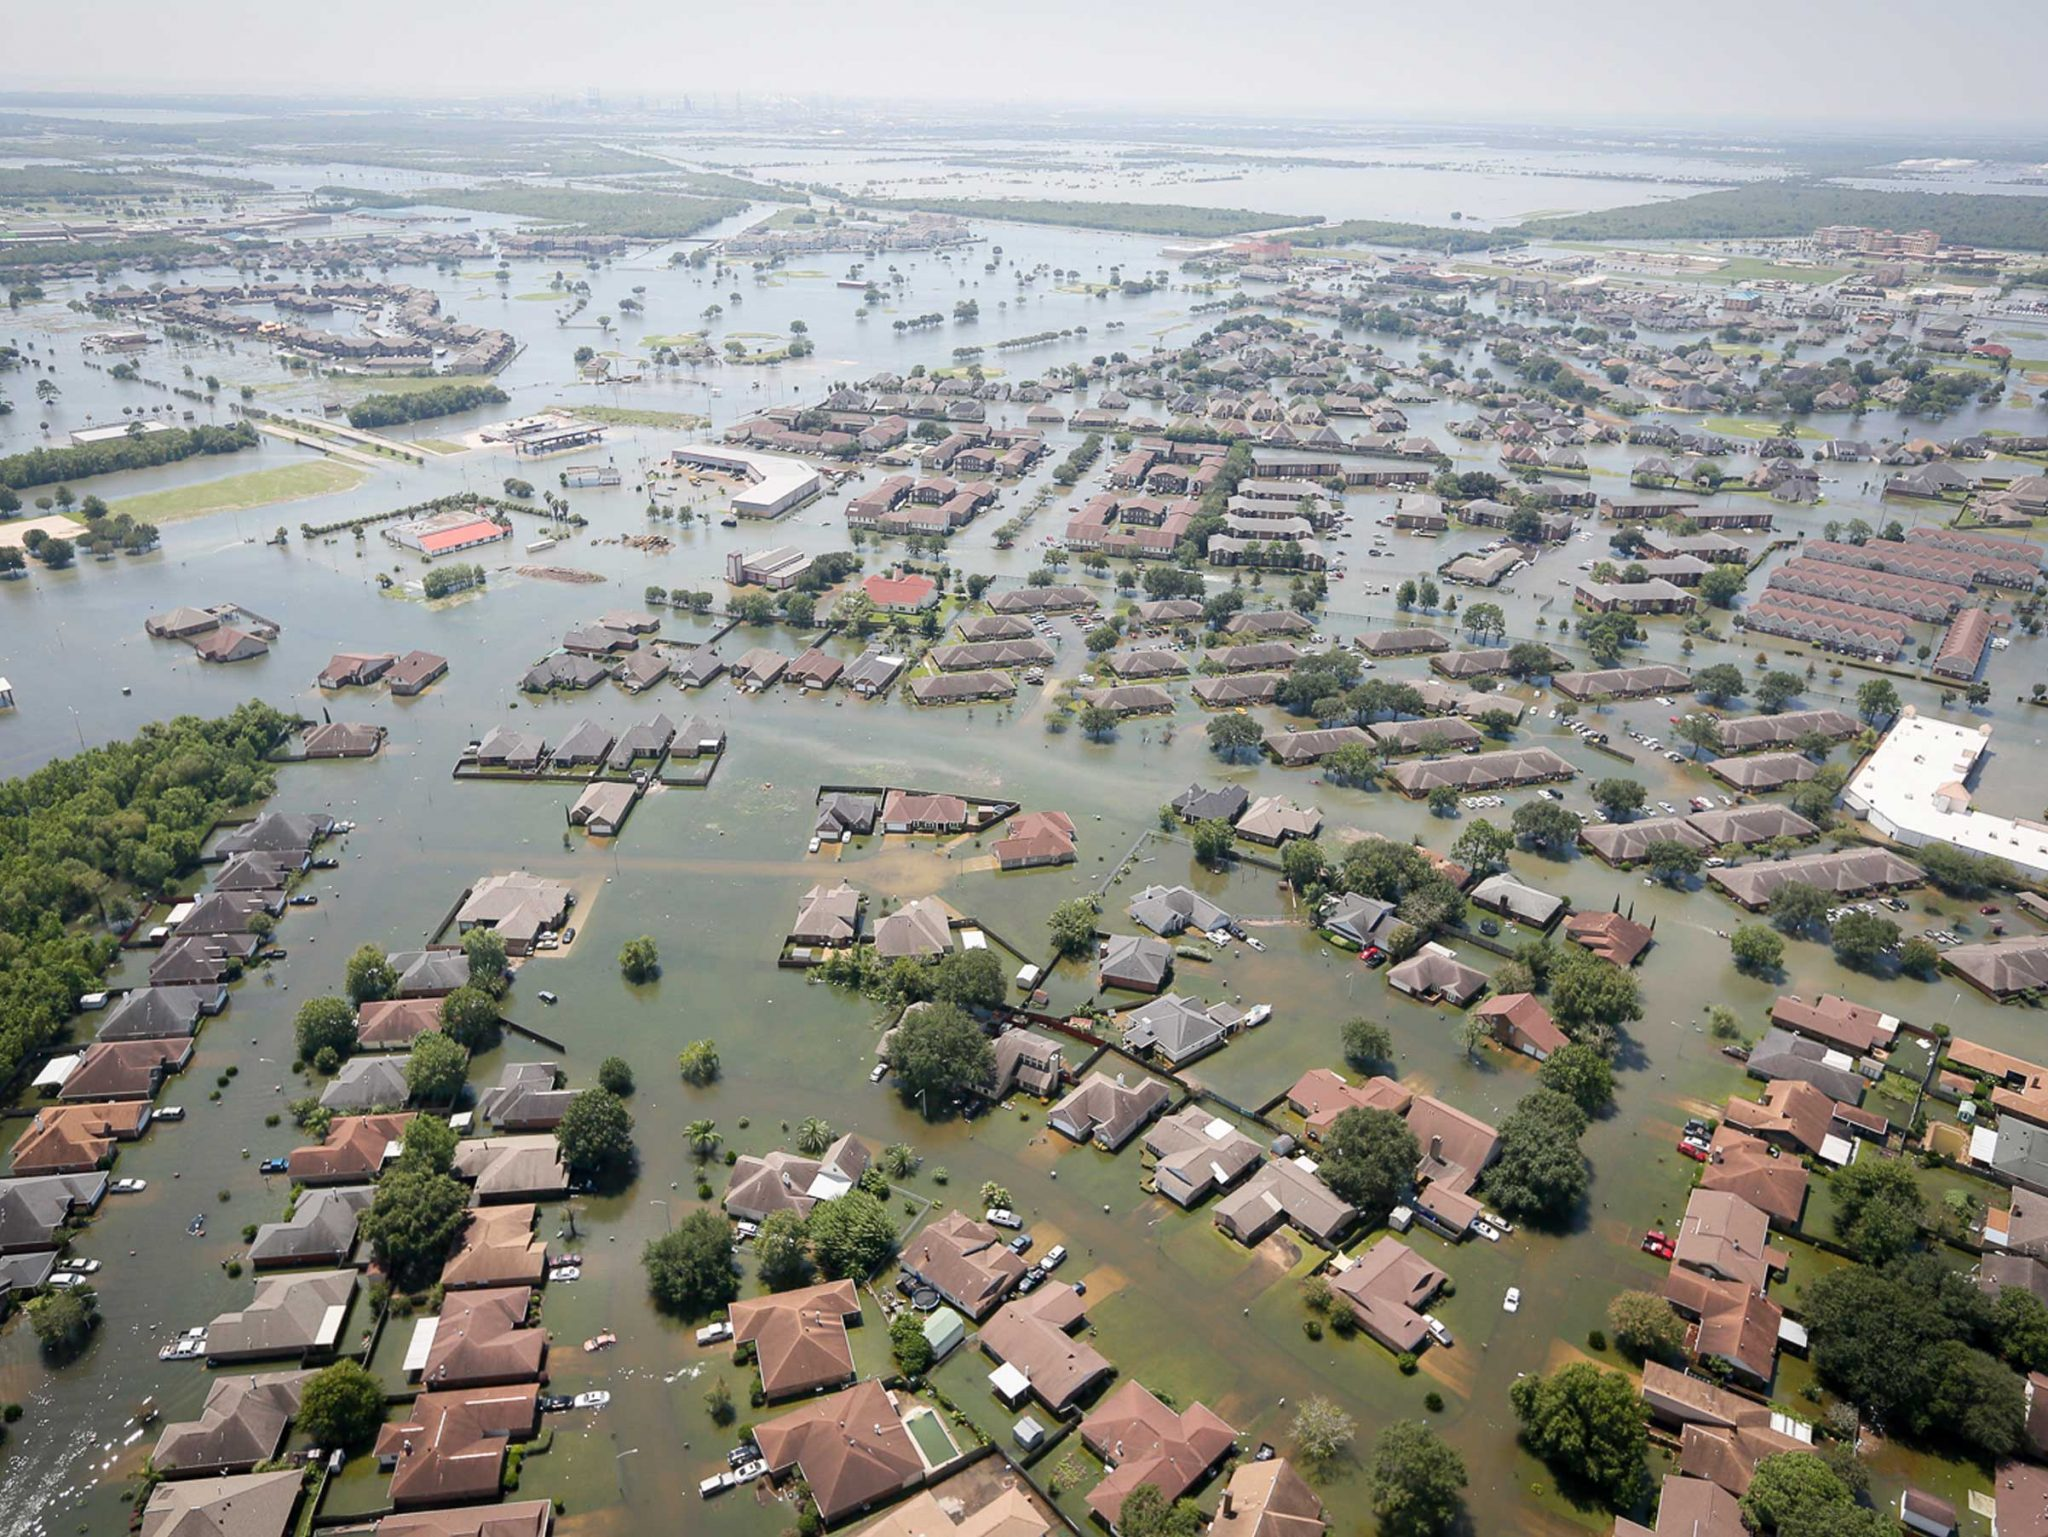 Citizenship and Climate Change: Flooding, Recovery, and the Politics of Water